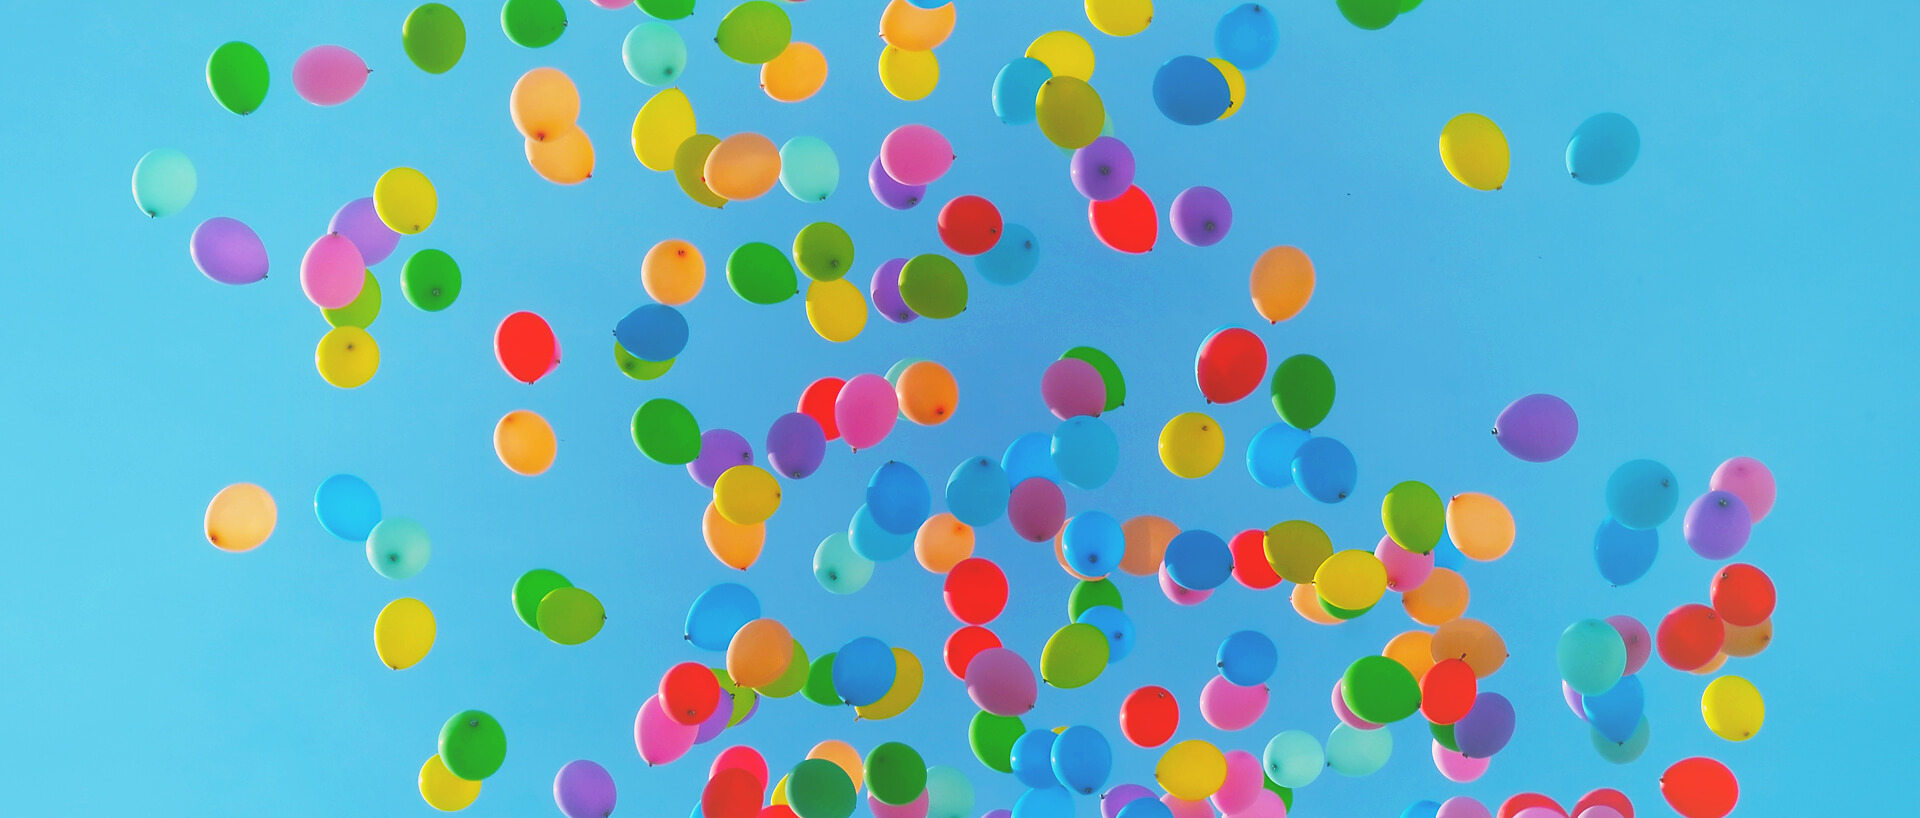 A large number of coloured balloons against a blue sky